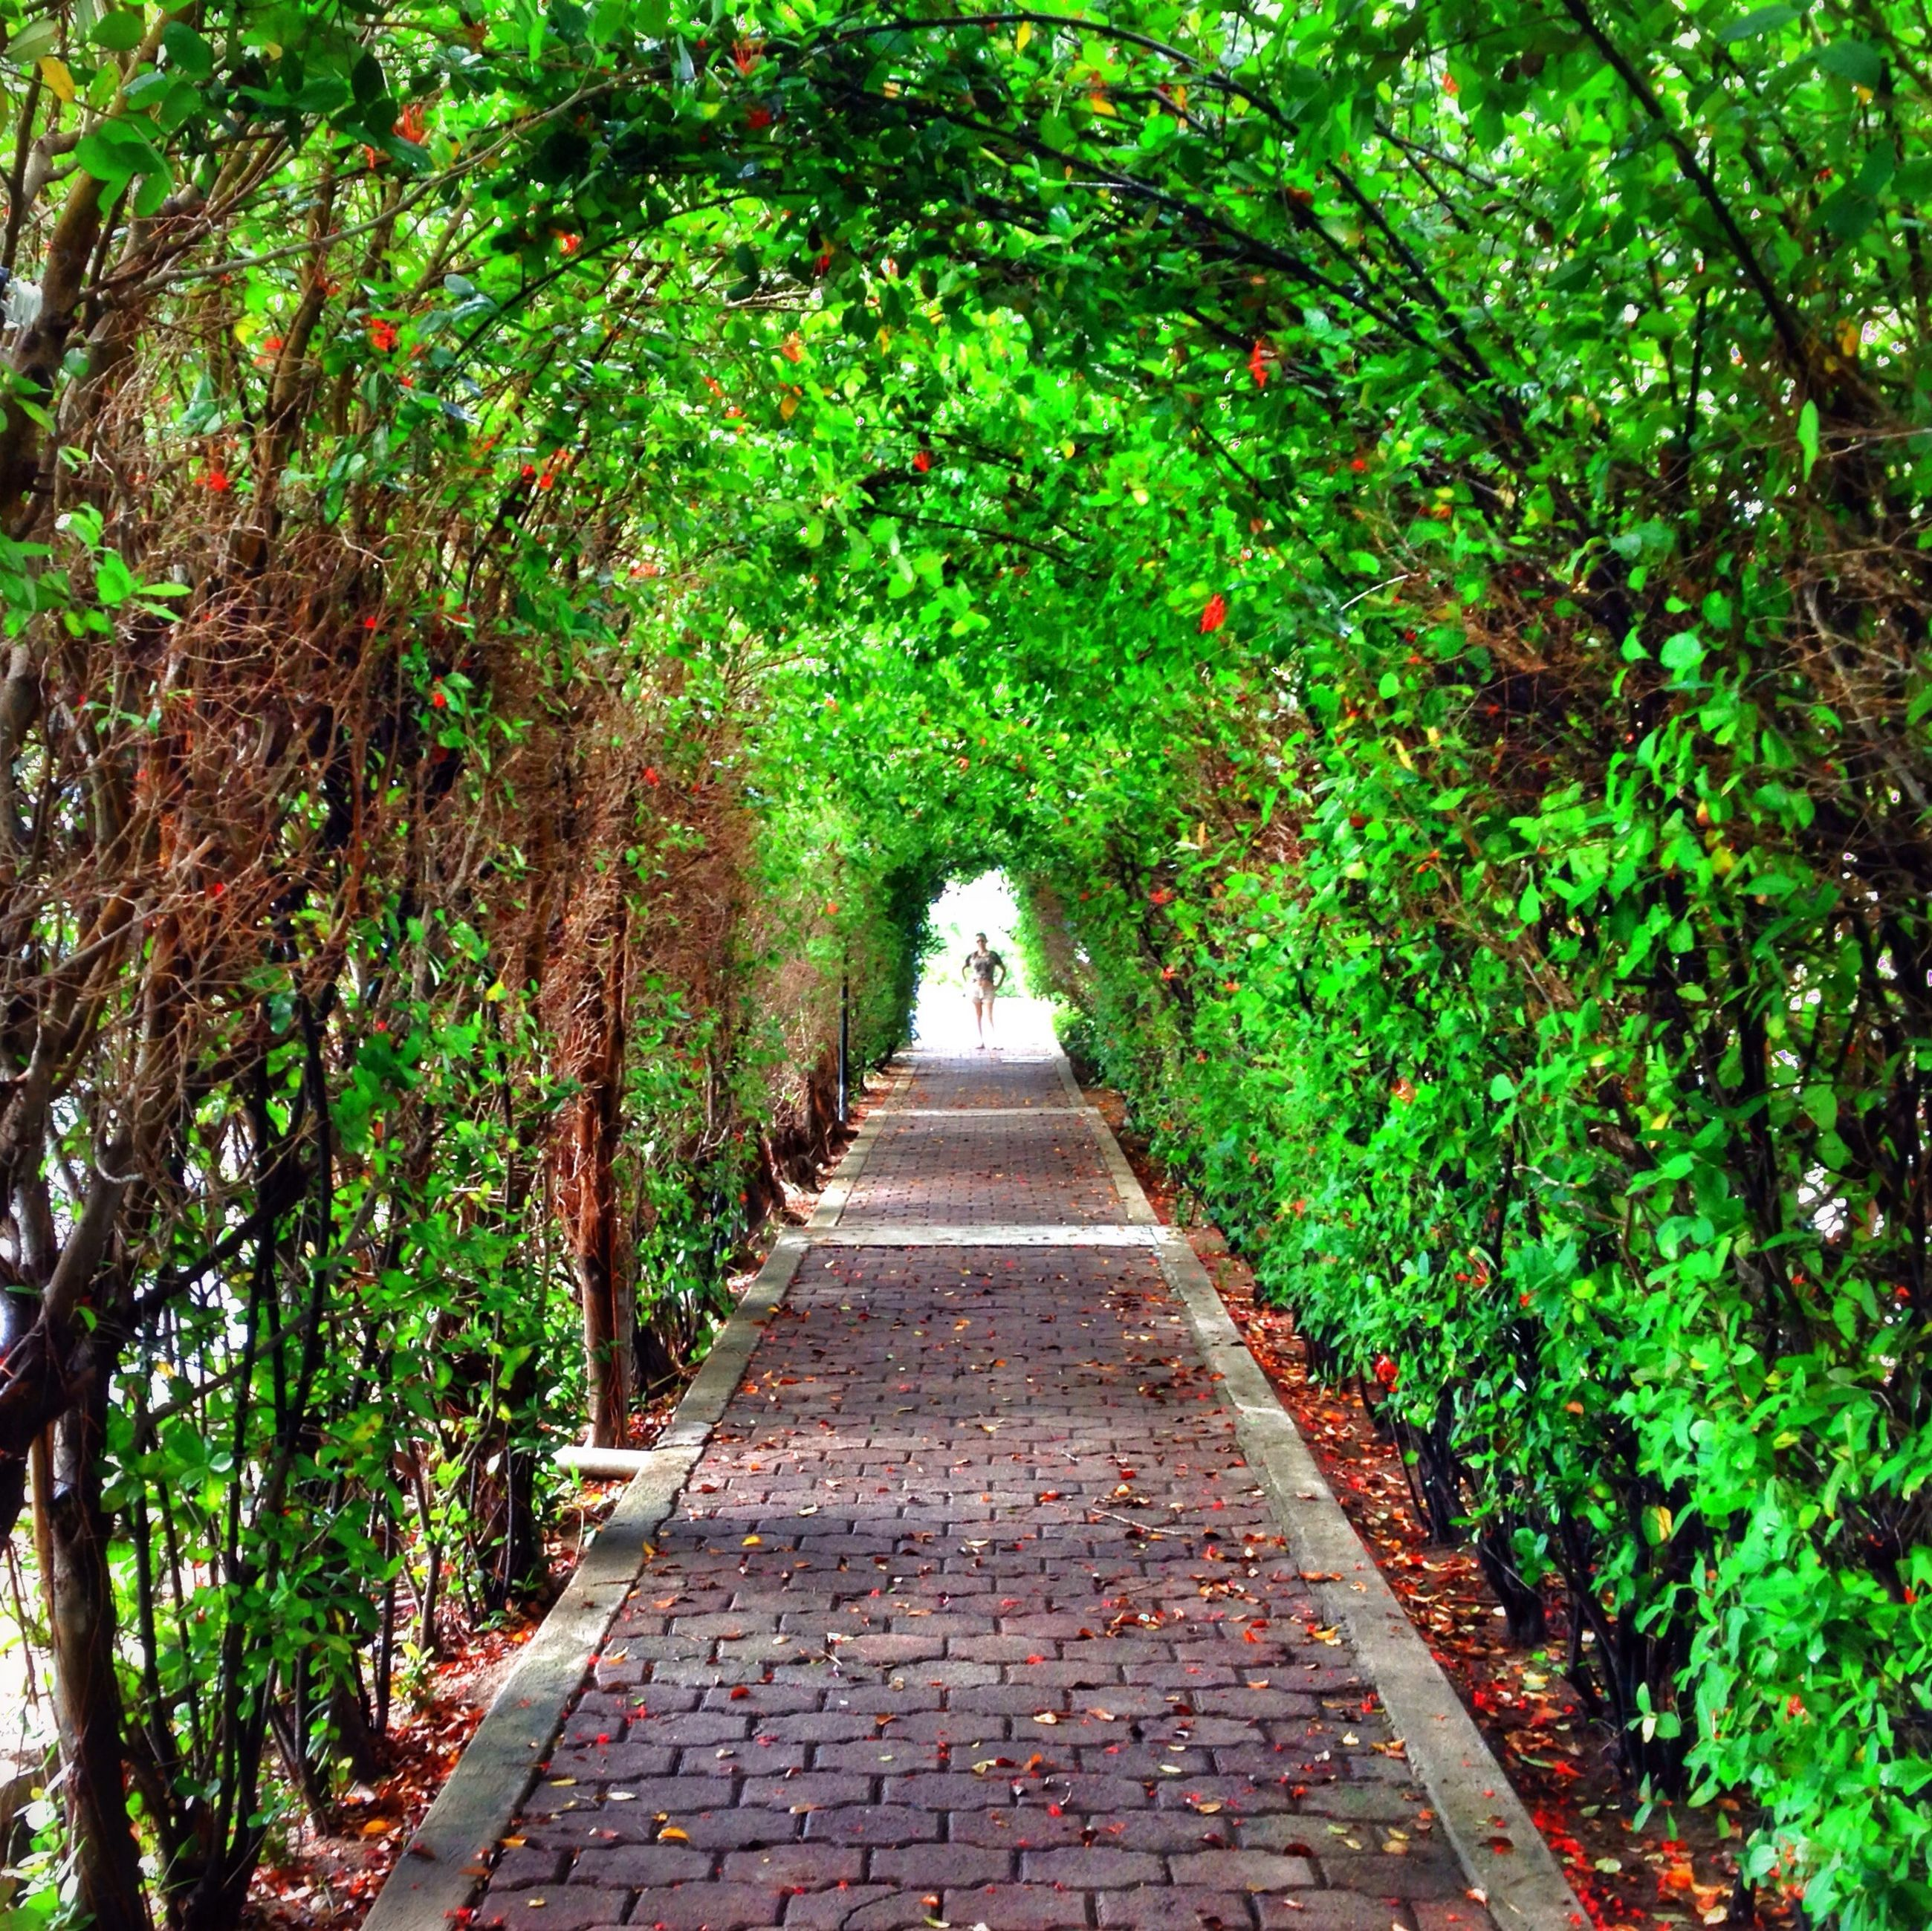 the way forward, tree, diminishing perspective, growth, footpath, green color, vanishing point, walkway, pathway, plant, nature, lush foliage, tranquility, park - man made space, narrow, rear view, day, branch, outdoors, beauty in nature